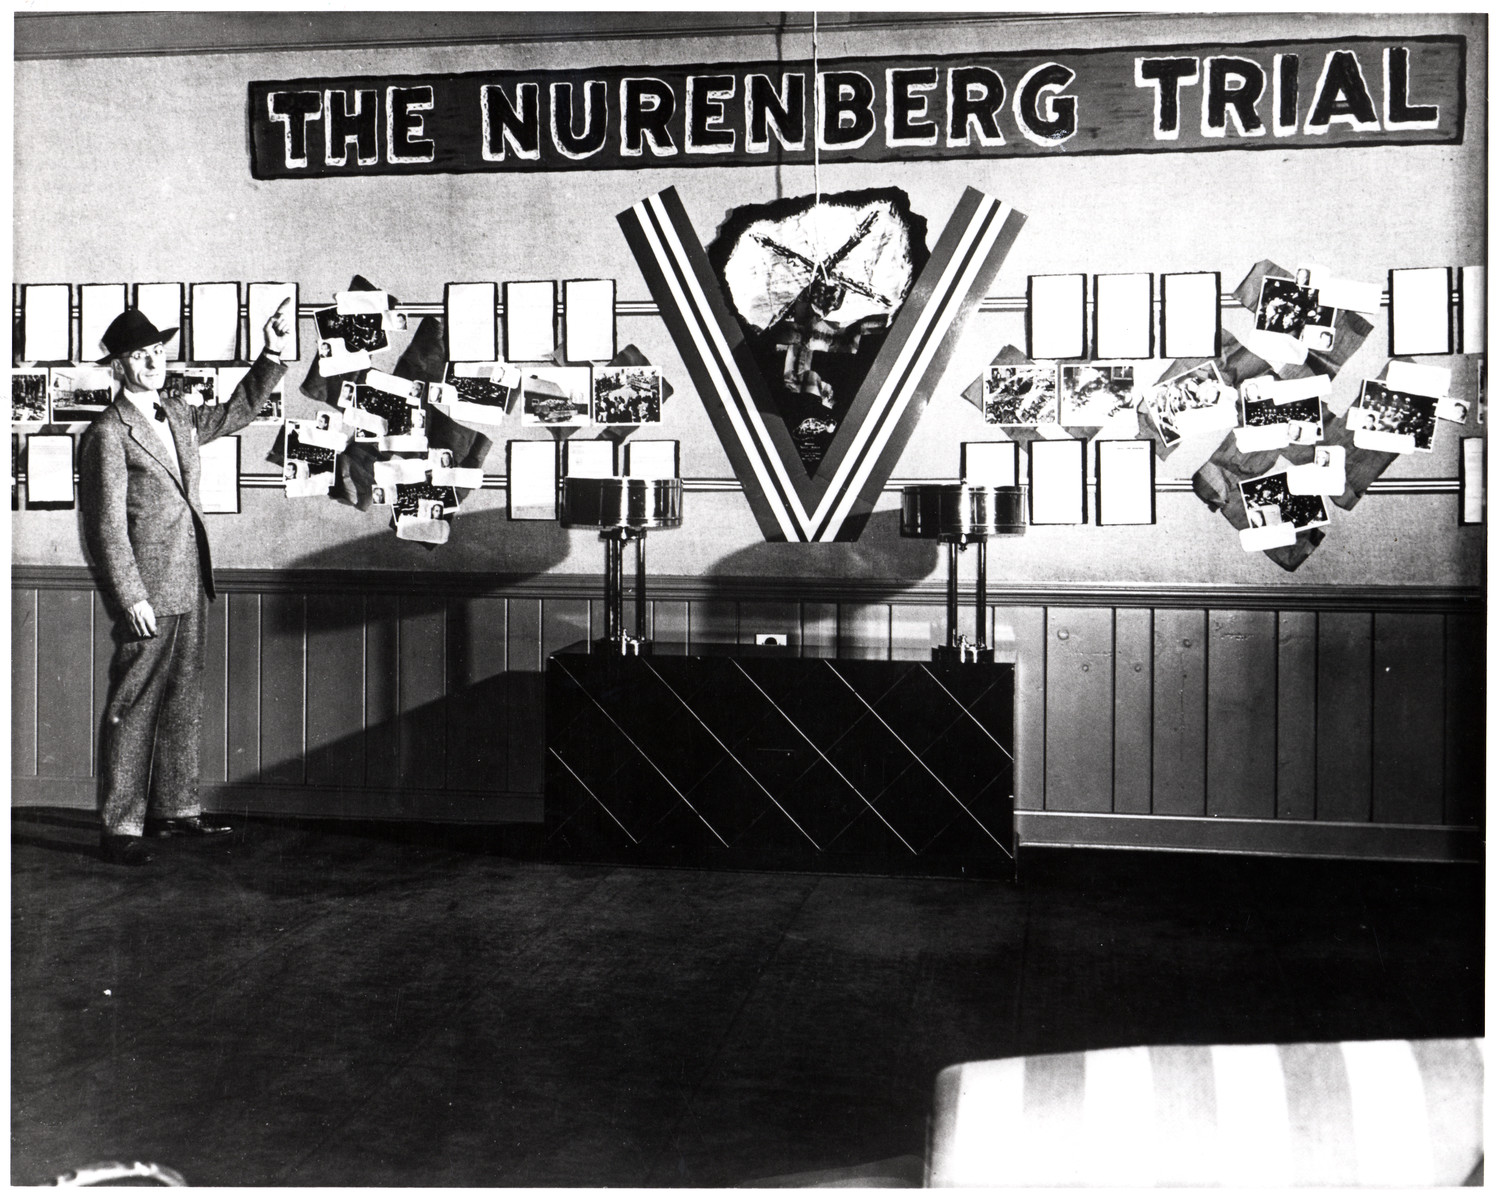 A man points to a diplay of photographs and documents in an exhibition about the Nuremberg Trial.